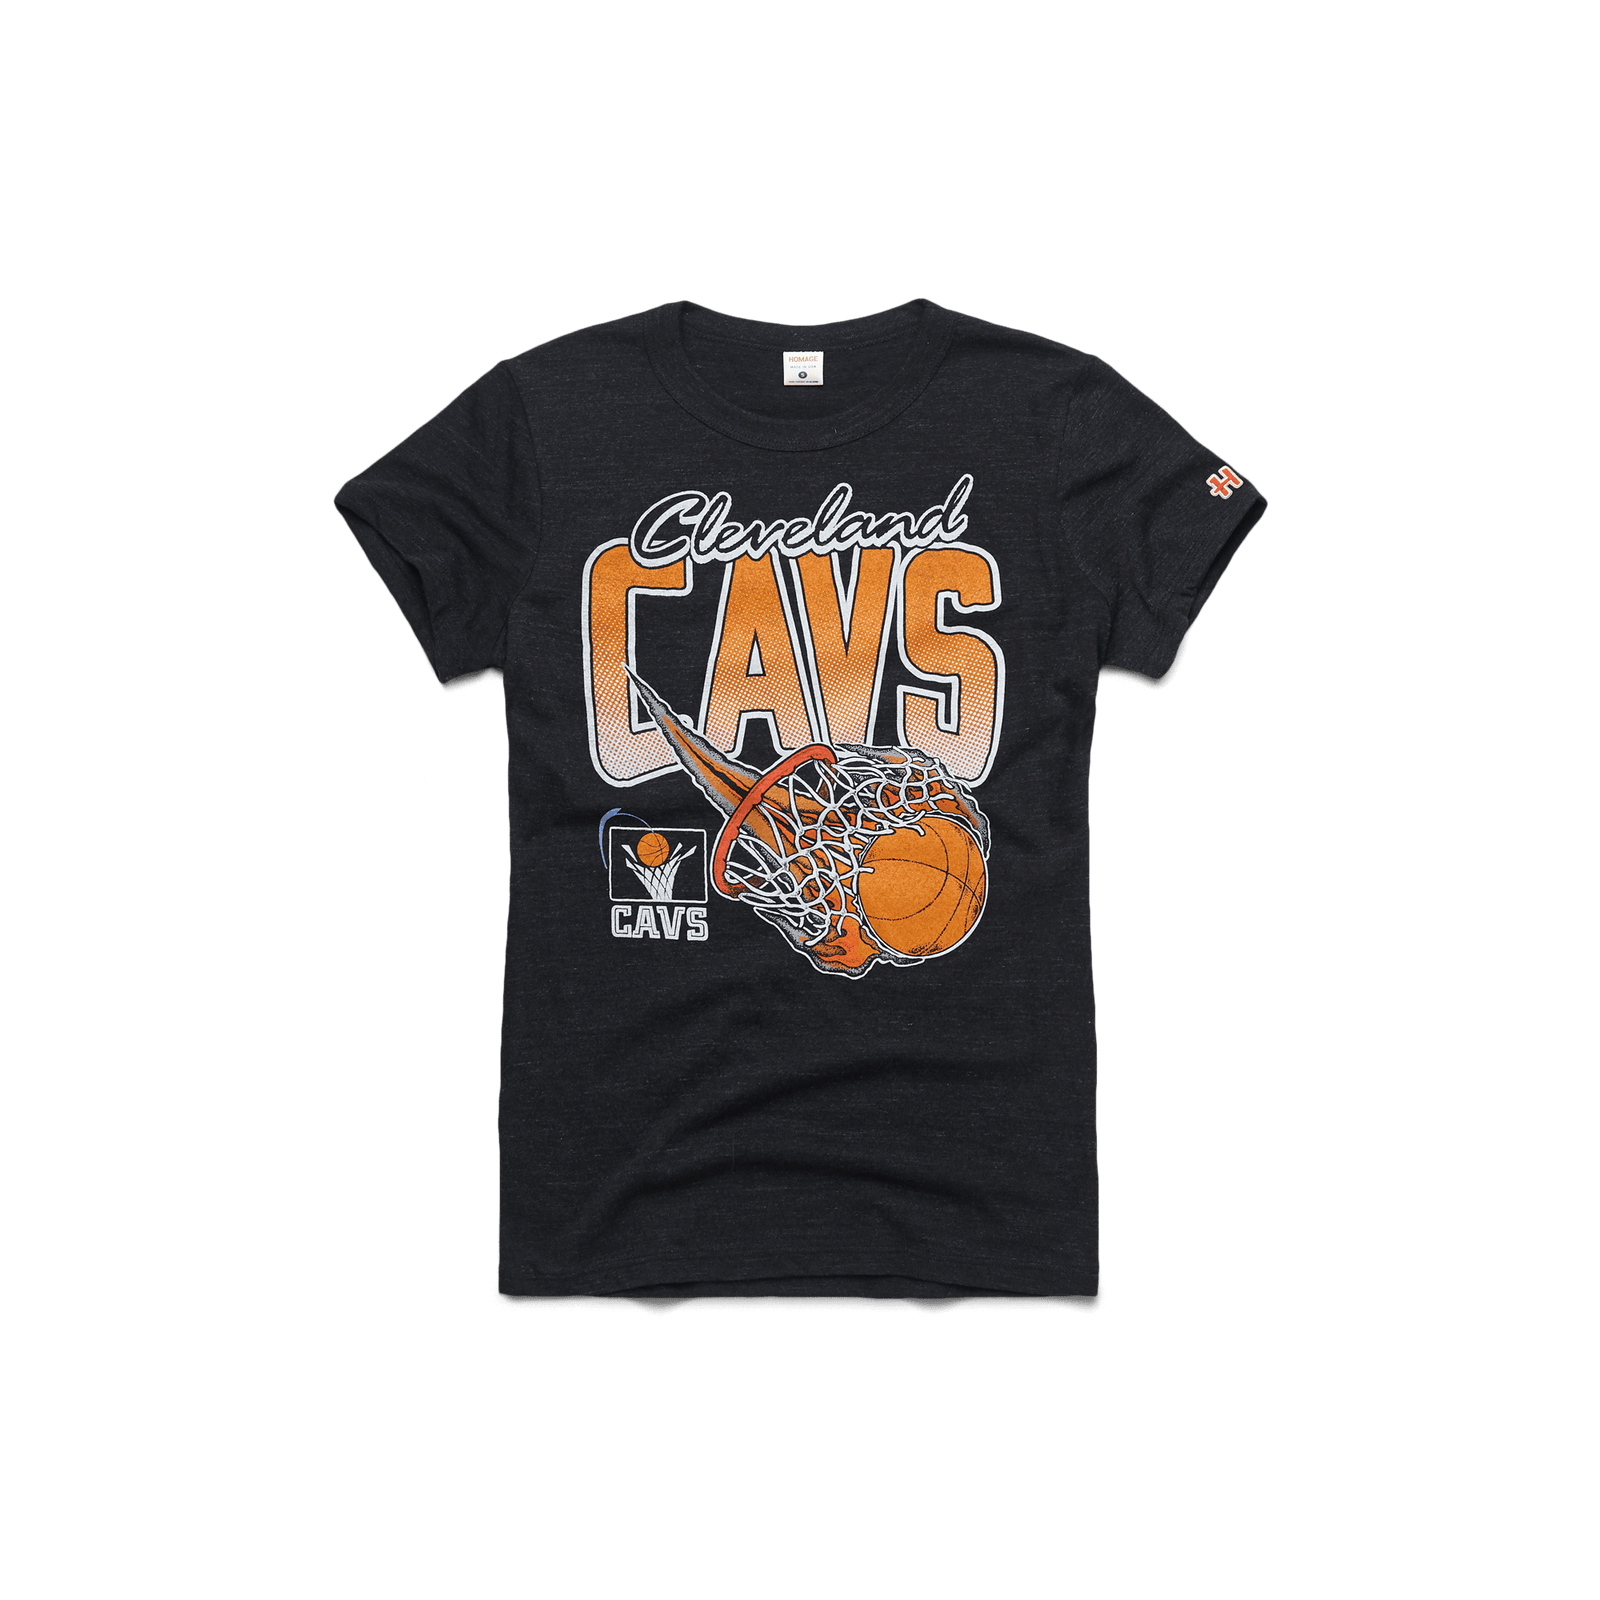 Women's Cavs On Fire Vintage Tee